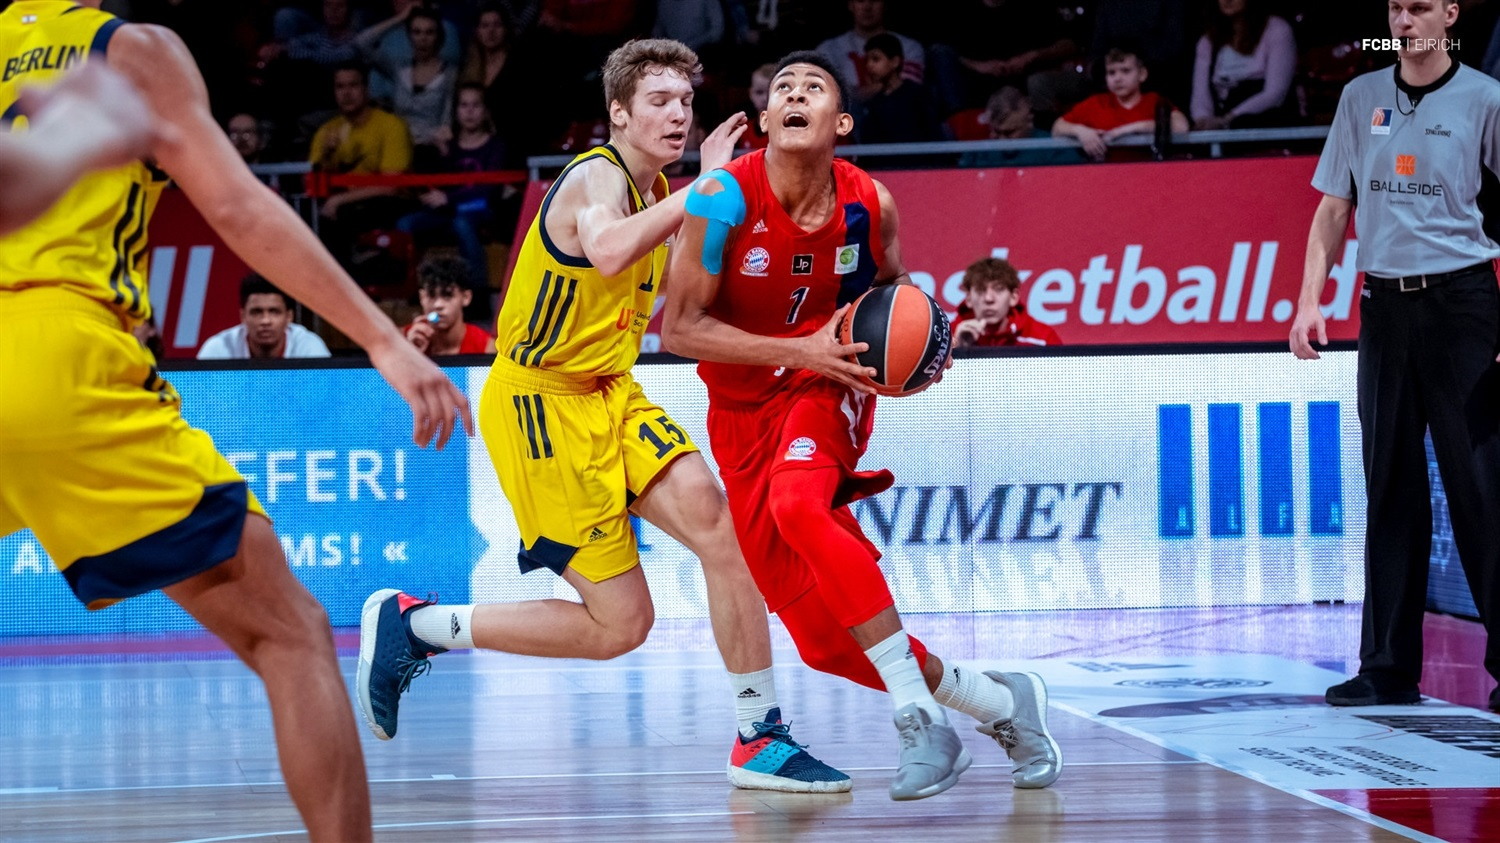 Jason George - U18 FC Bayern Munich - ANGT Munich 2019 (photo FCBB - Eirich) JT18